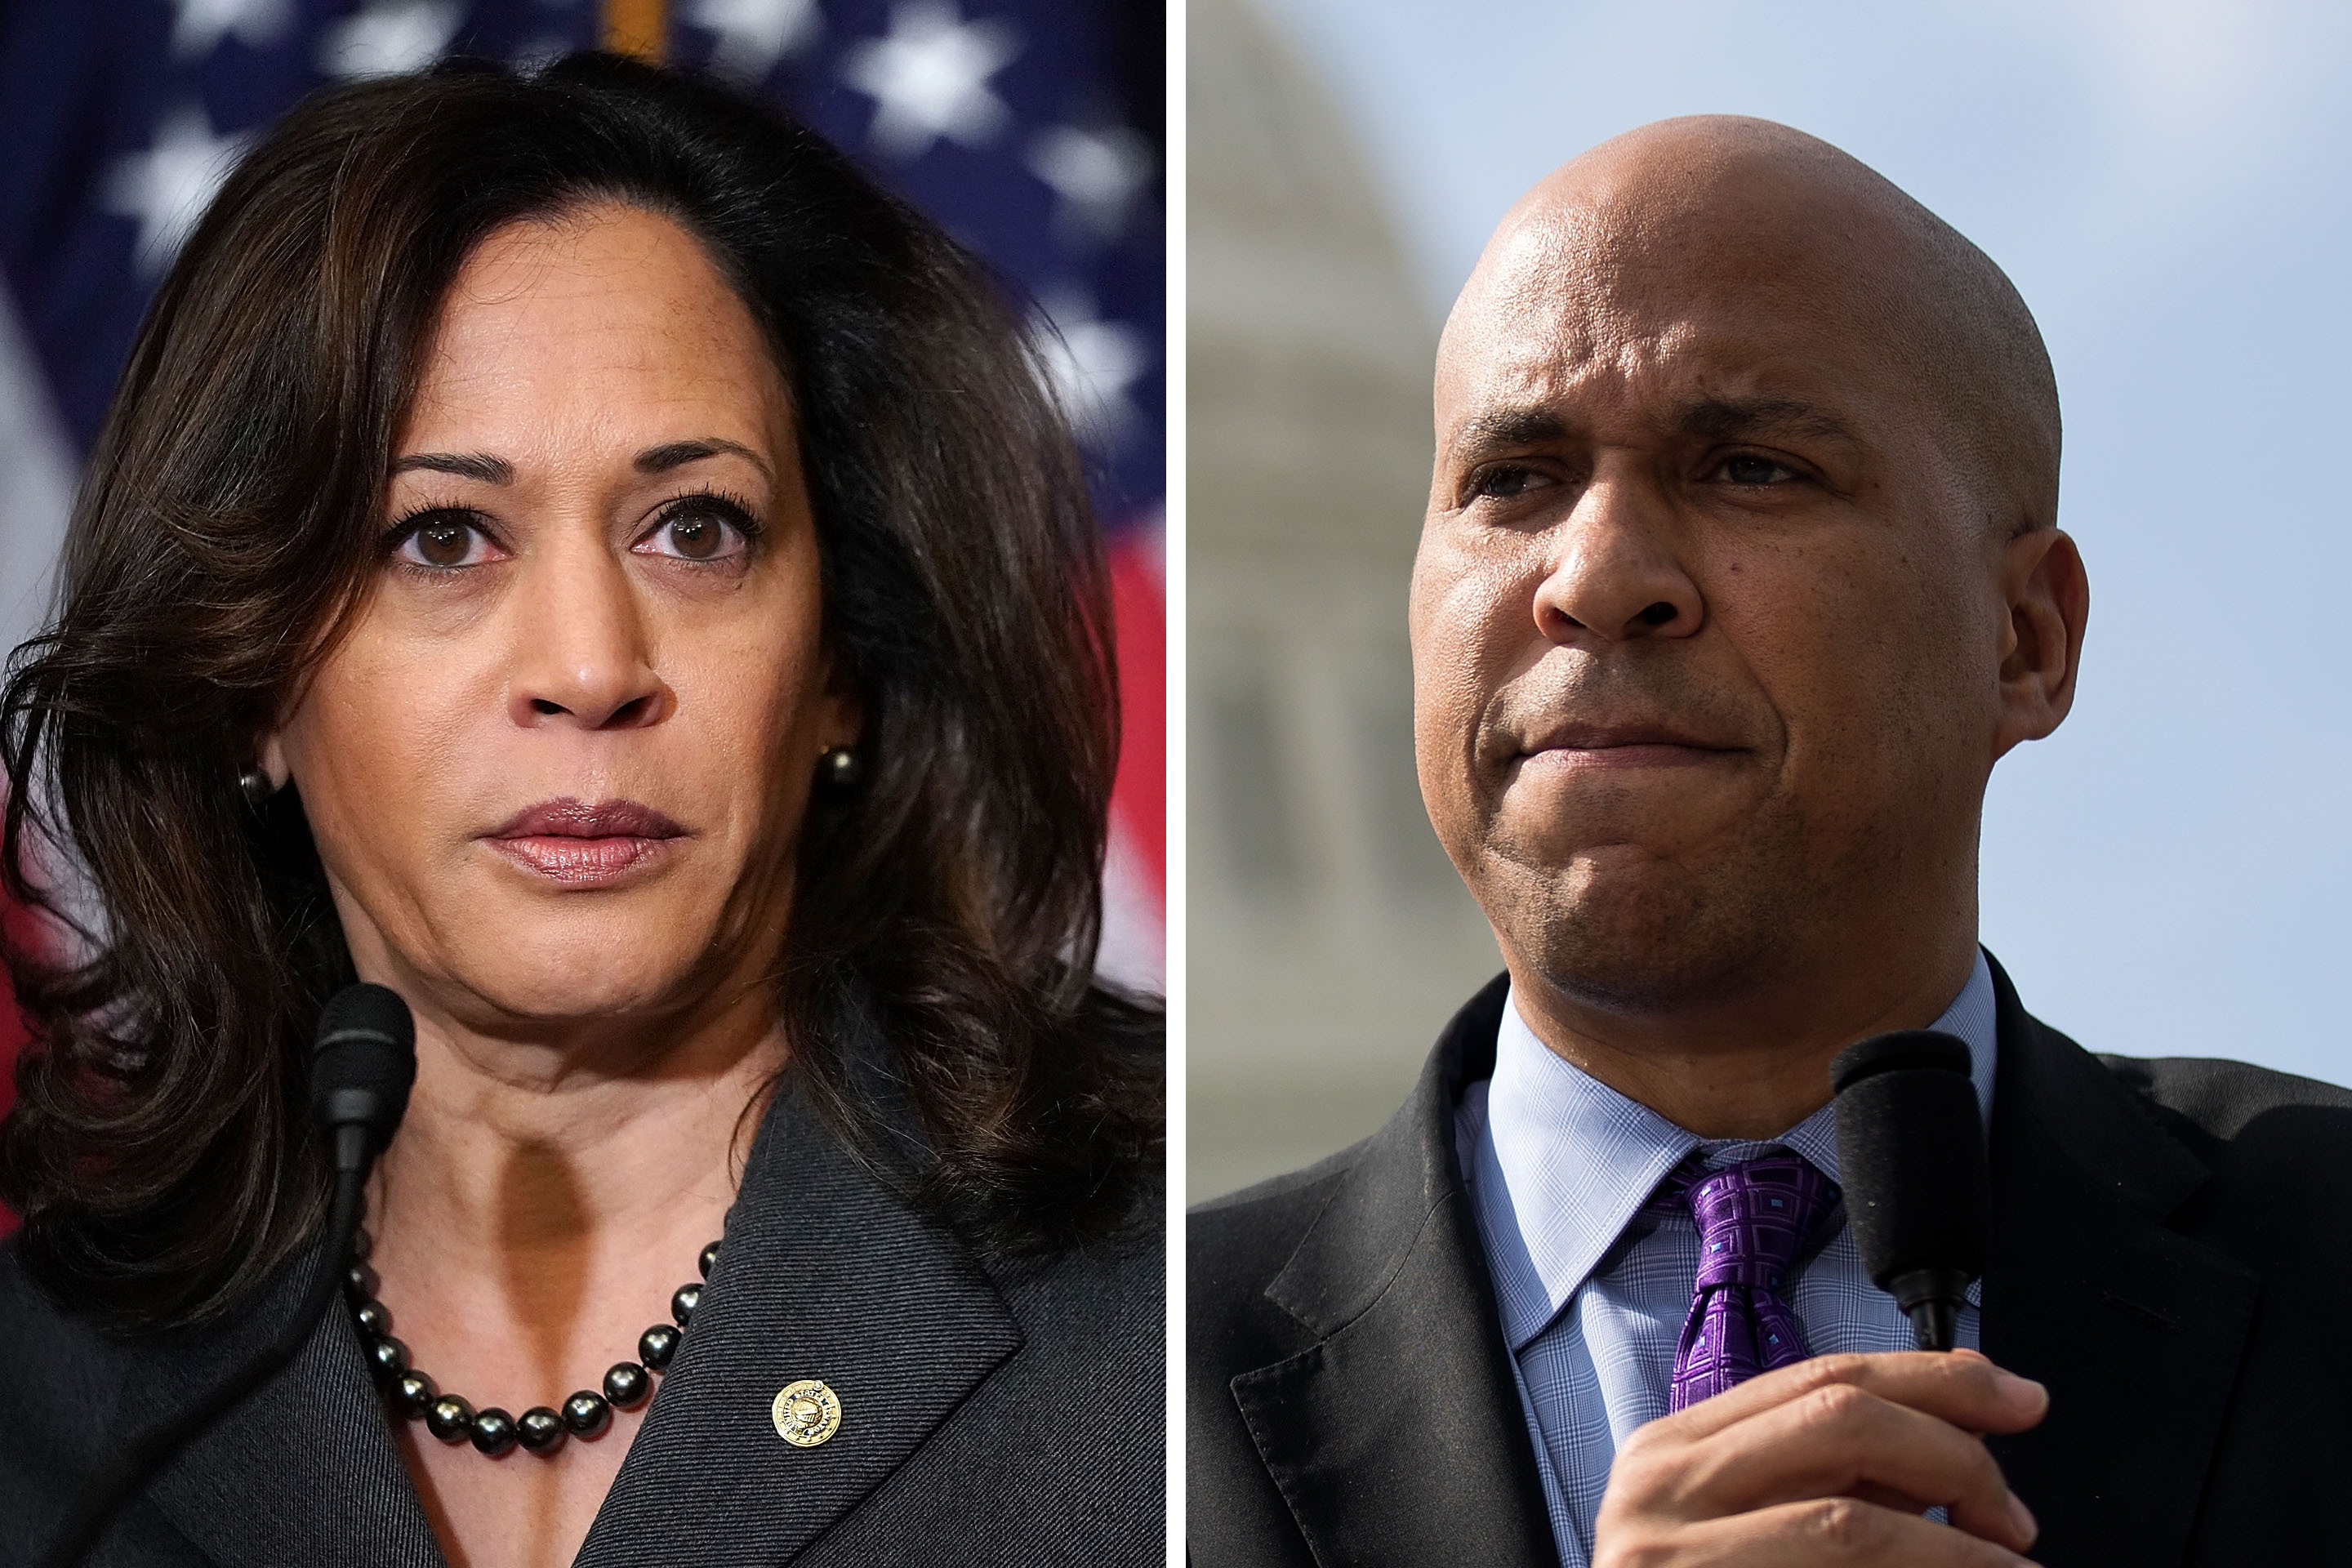 kamala-harris-and-cory-booker